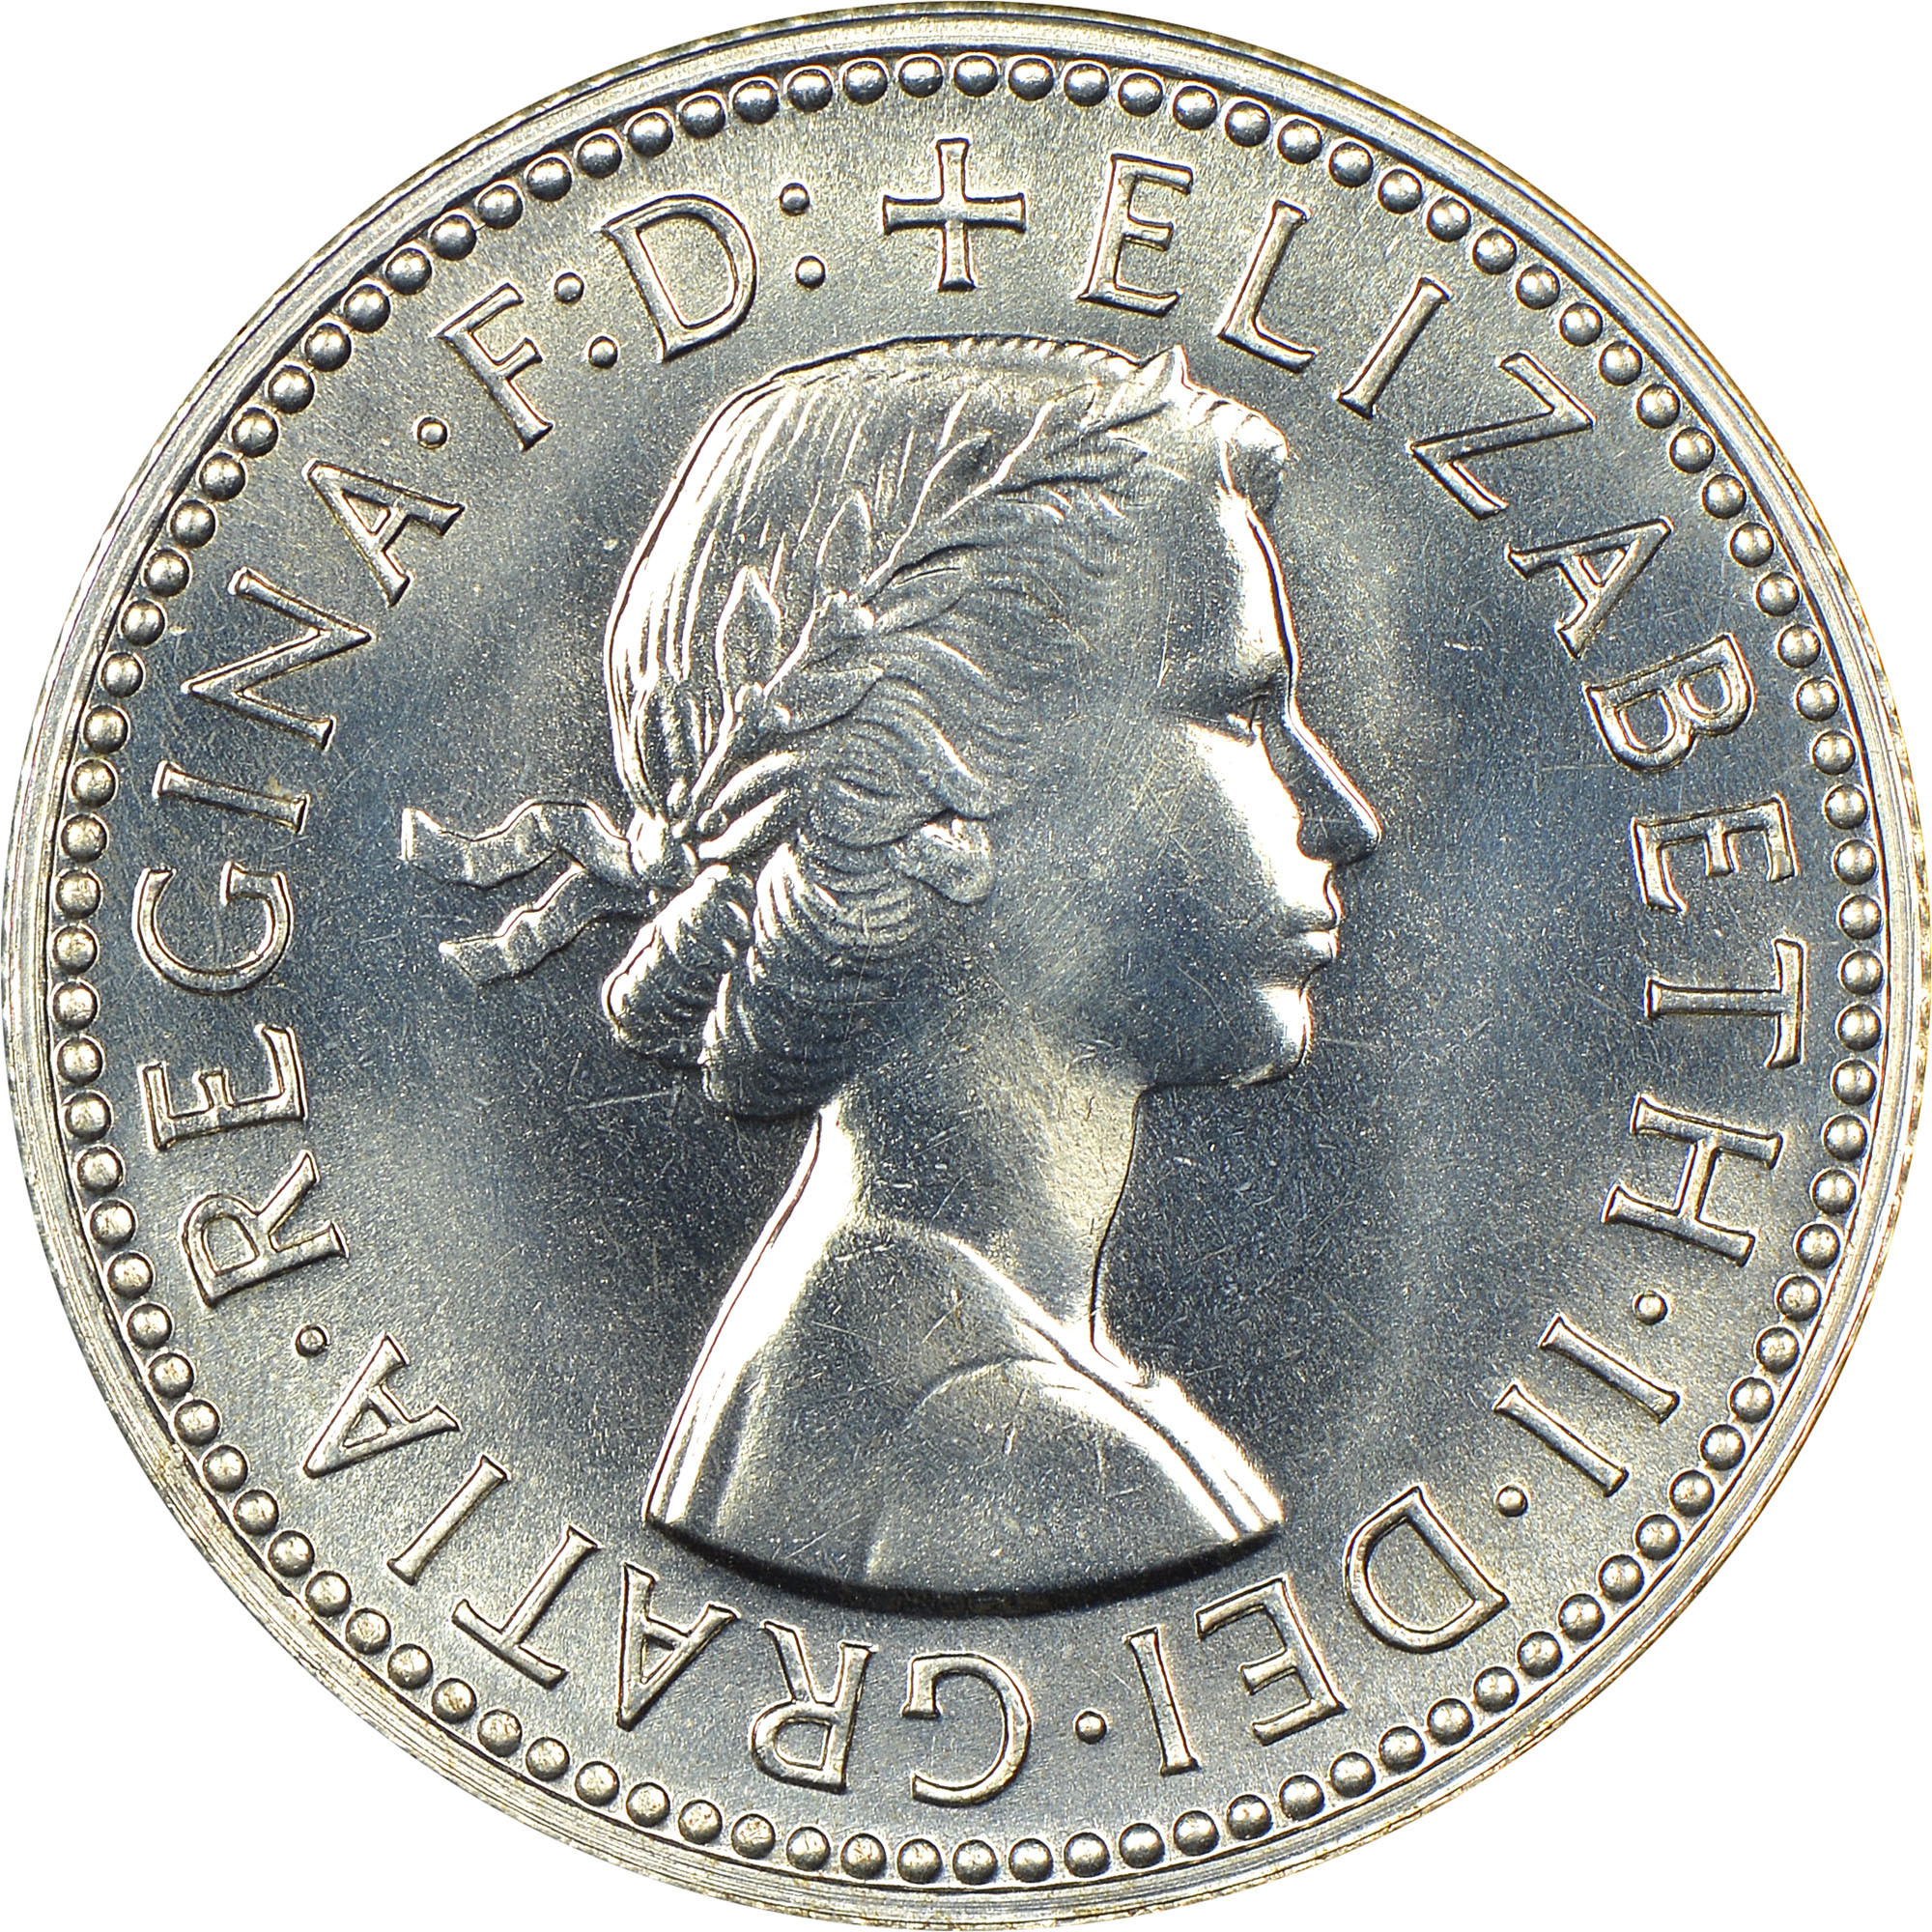 Beautiful Australia Shilling Km 59 Prices & Values Price Of Silver Quarters Of Adorable 42 Ideas Price Of Silver Quarters